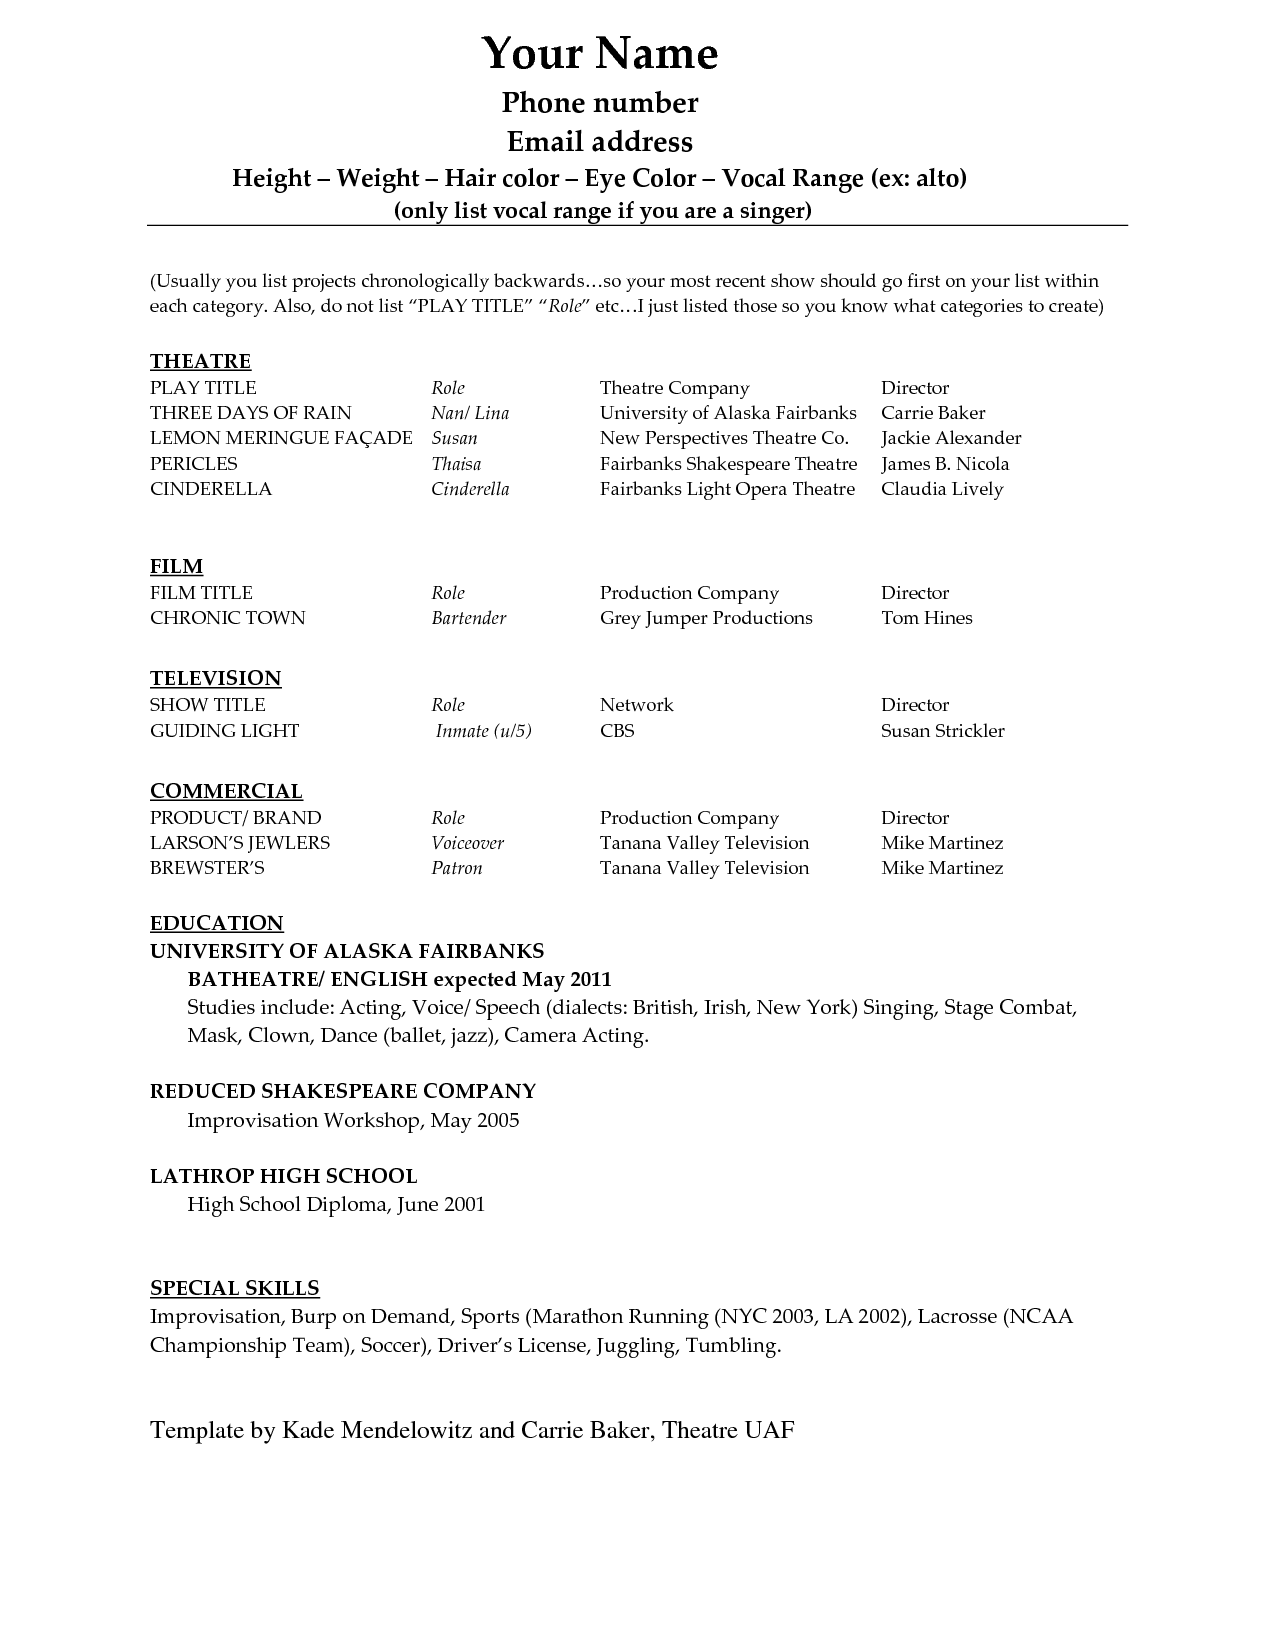 acting resume template download free httpwwwresumecareerinfo - Download Free Resume Templates For Microsoft Word